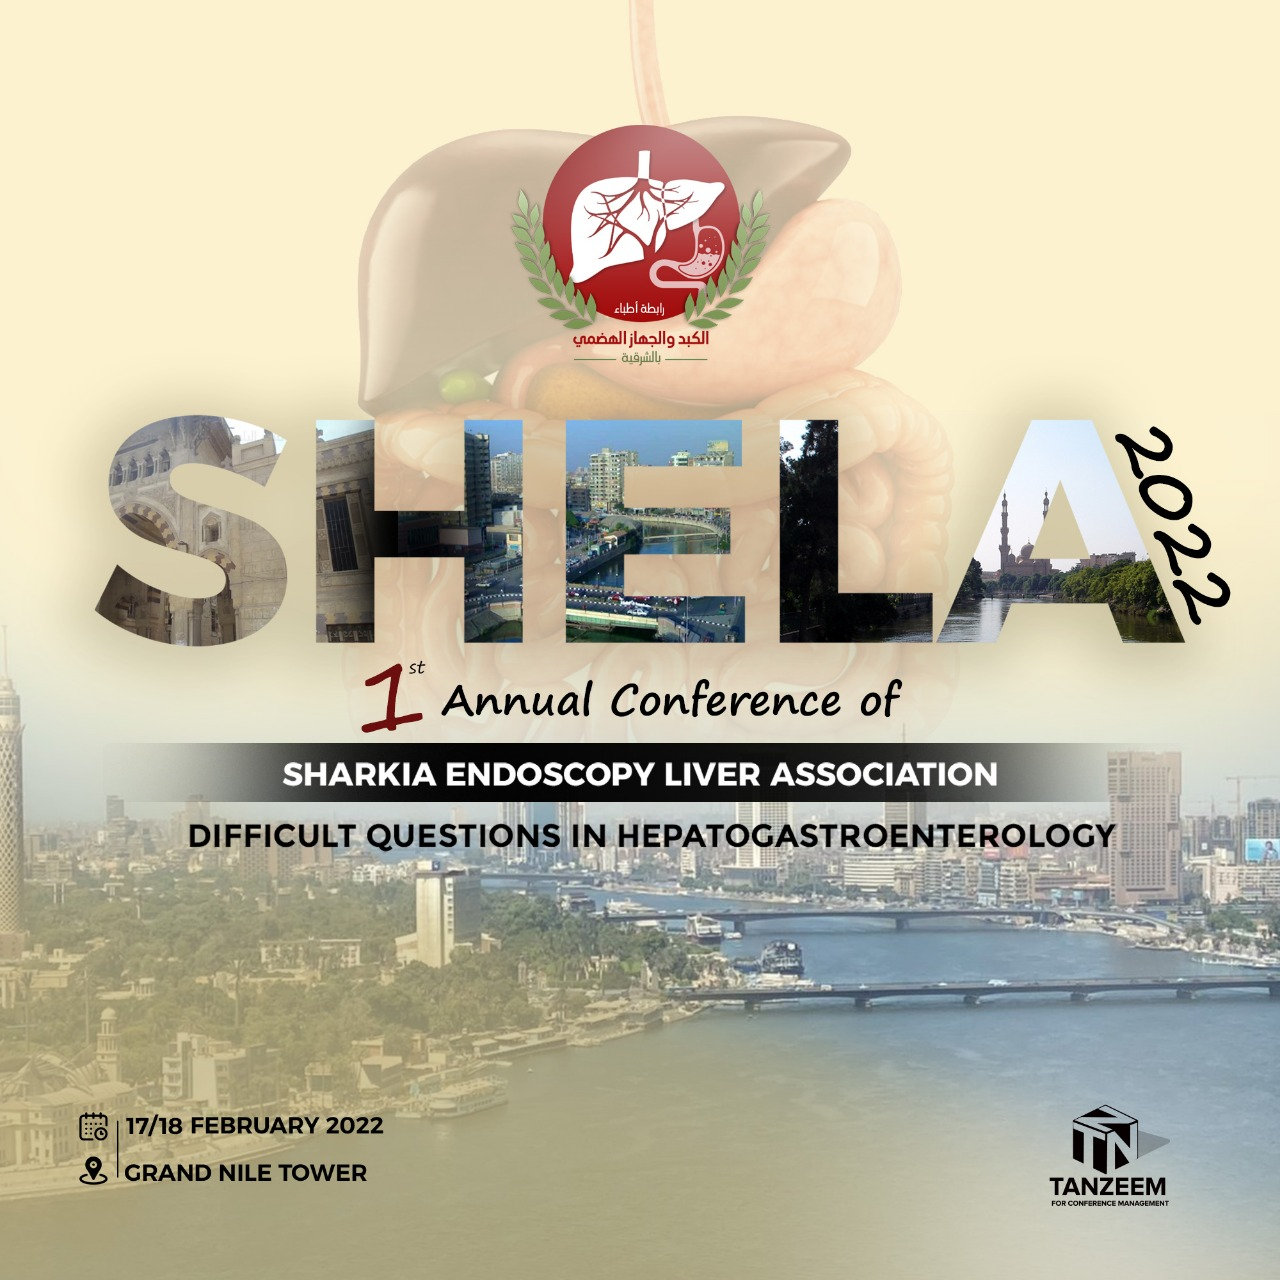 1st Annual Conference of Sharkia Endoscopy Liver Association